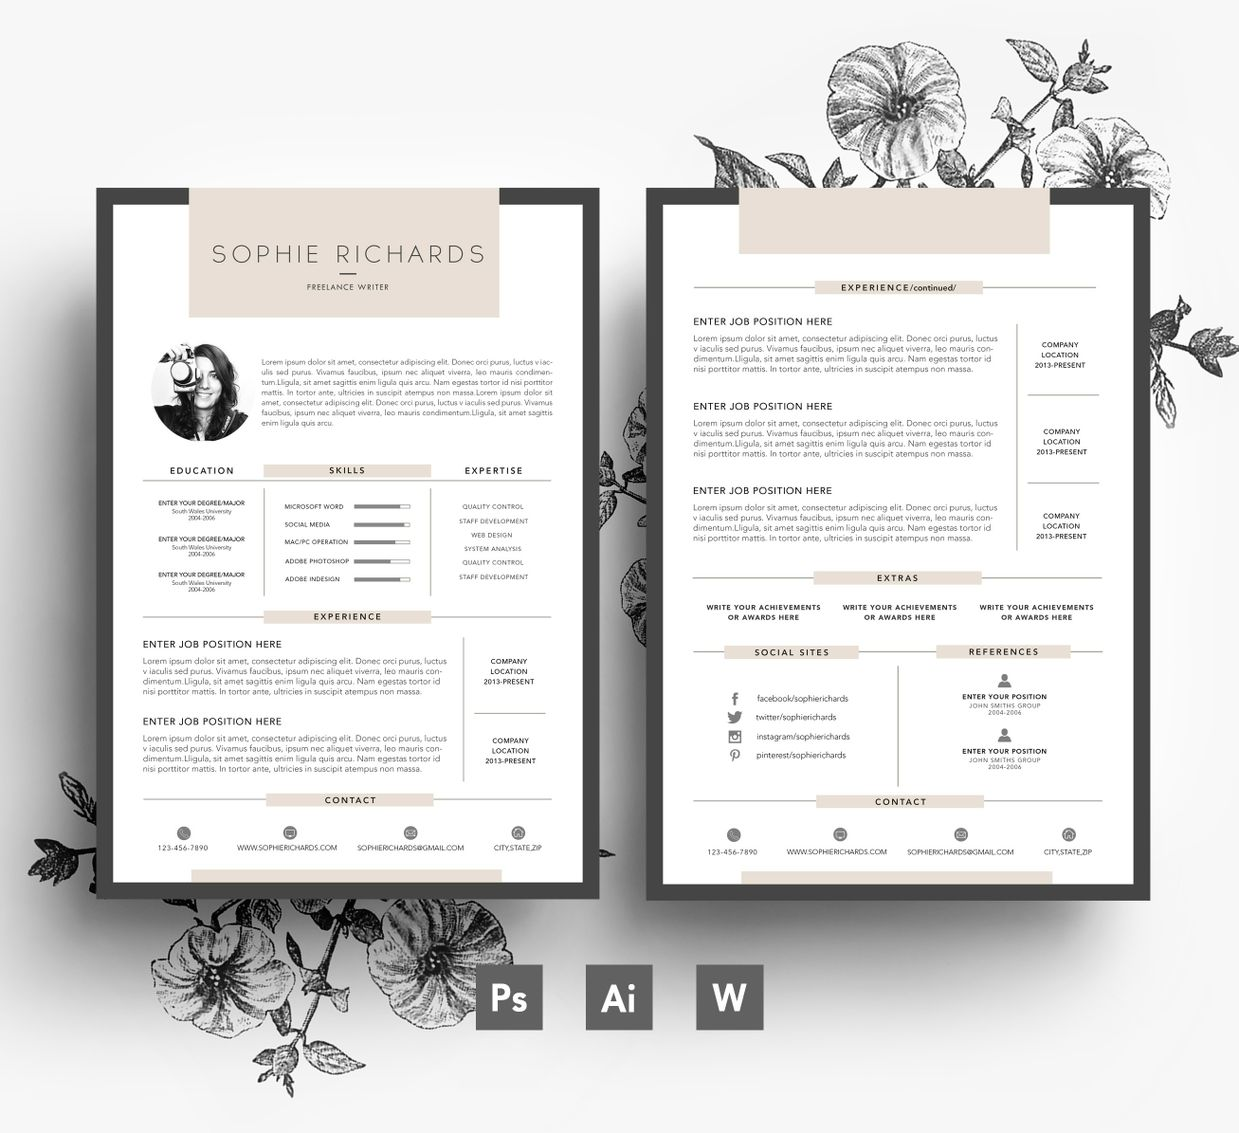 custom resume template 2 page cv cover letter psd file - 2 Page Resume Template